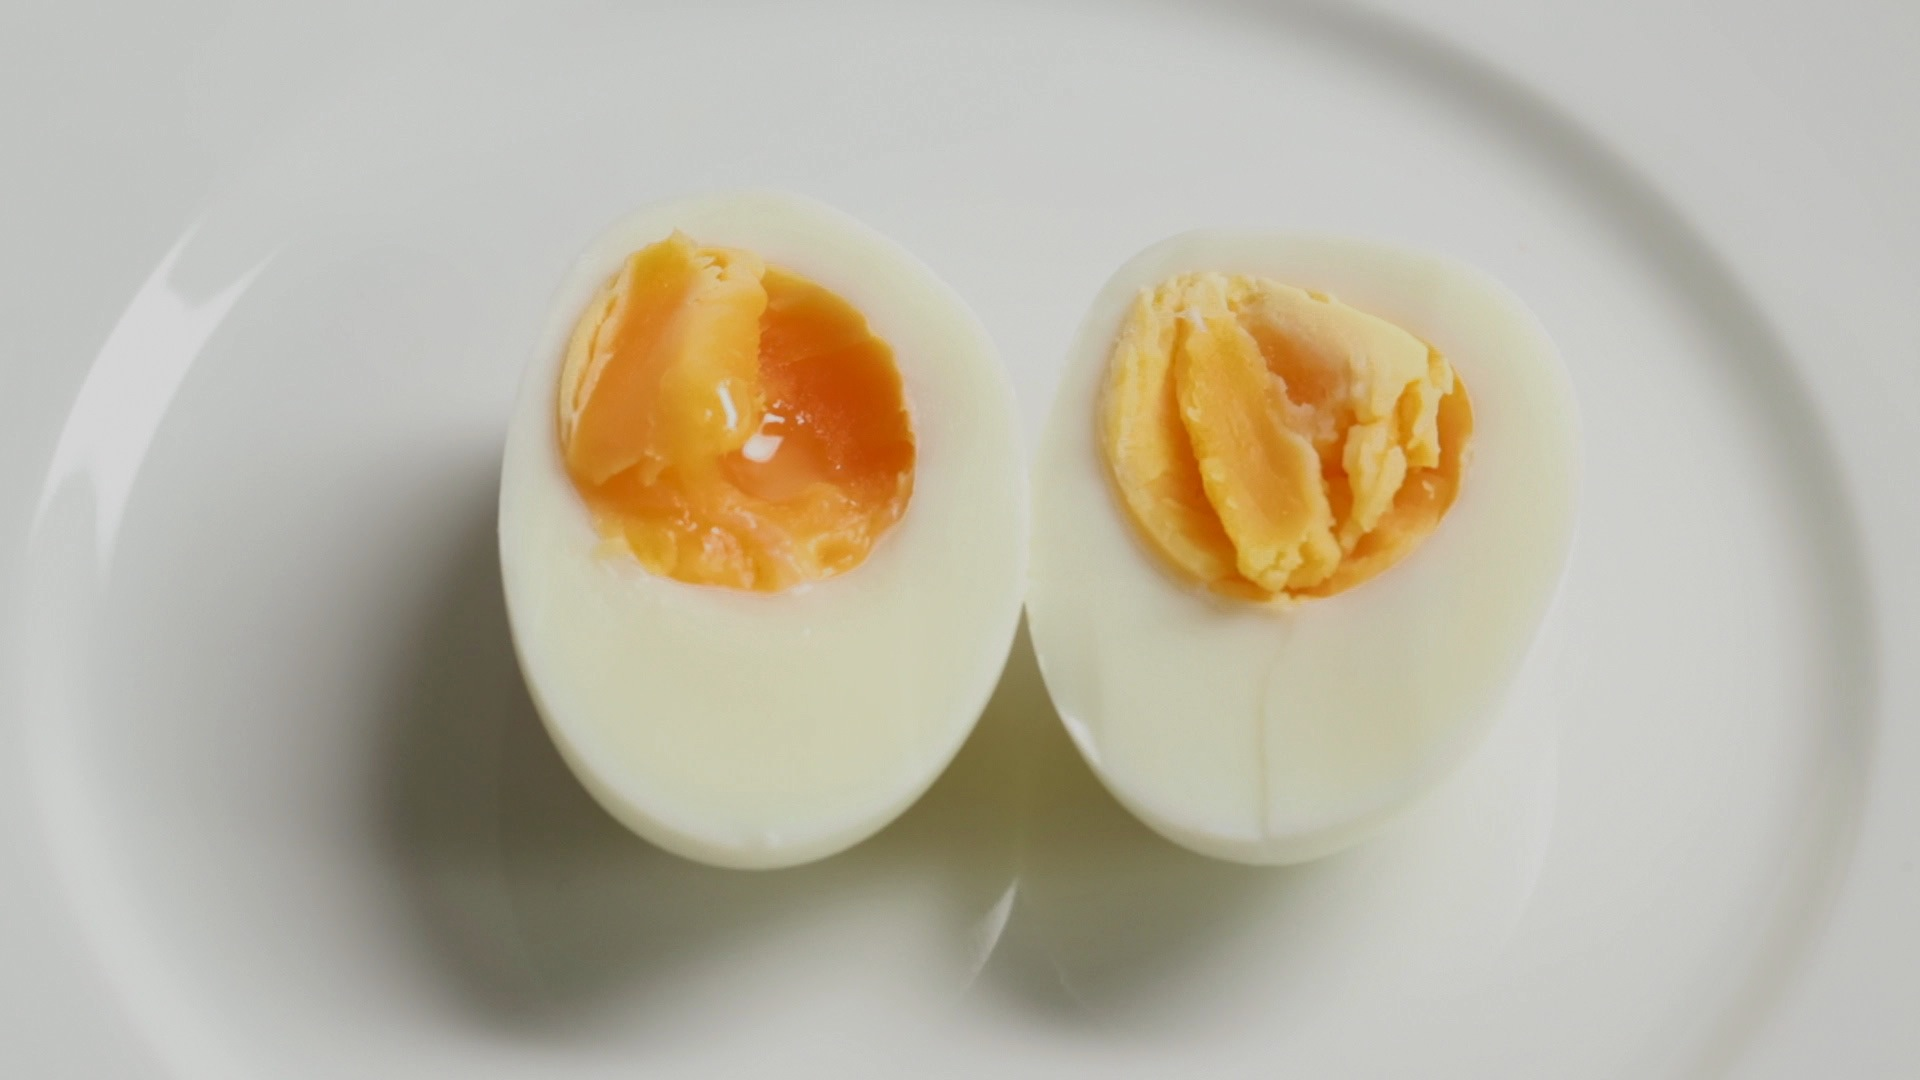 how to boil eggs with pictures | Astar Tutorial - photo#41